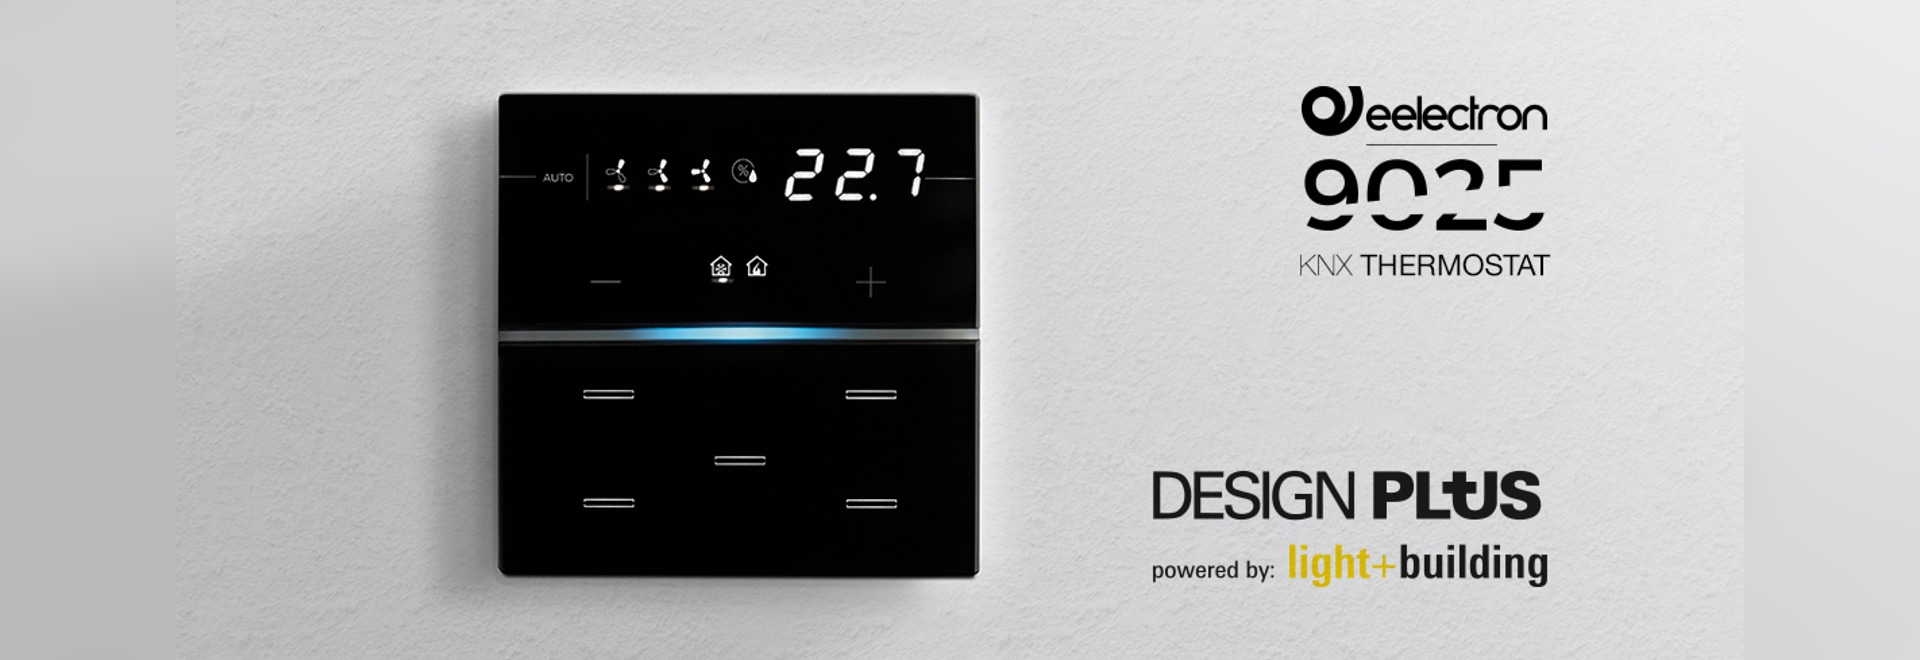 THE KNX 9025'S THERMOSTAT/HUMIDISTAT RECEIVES THE DESIGN PLUS AWARD